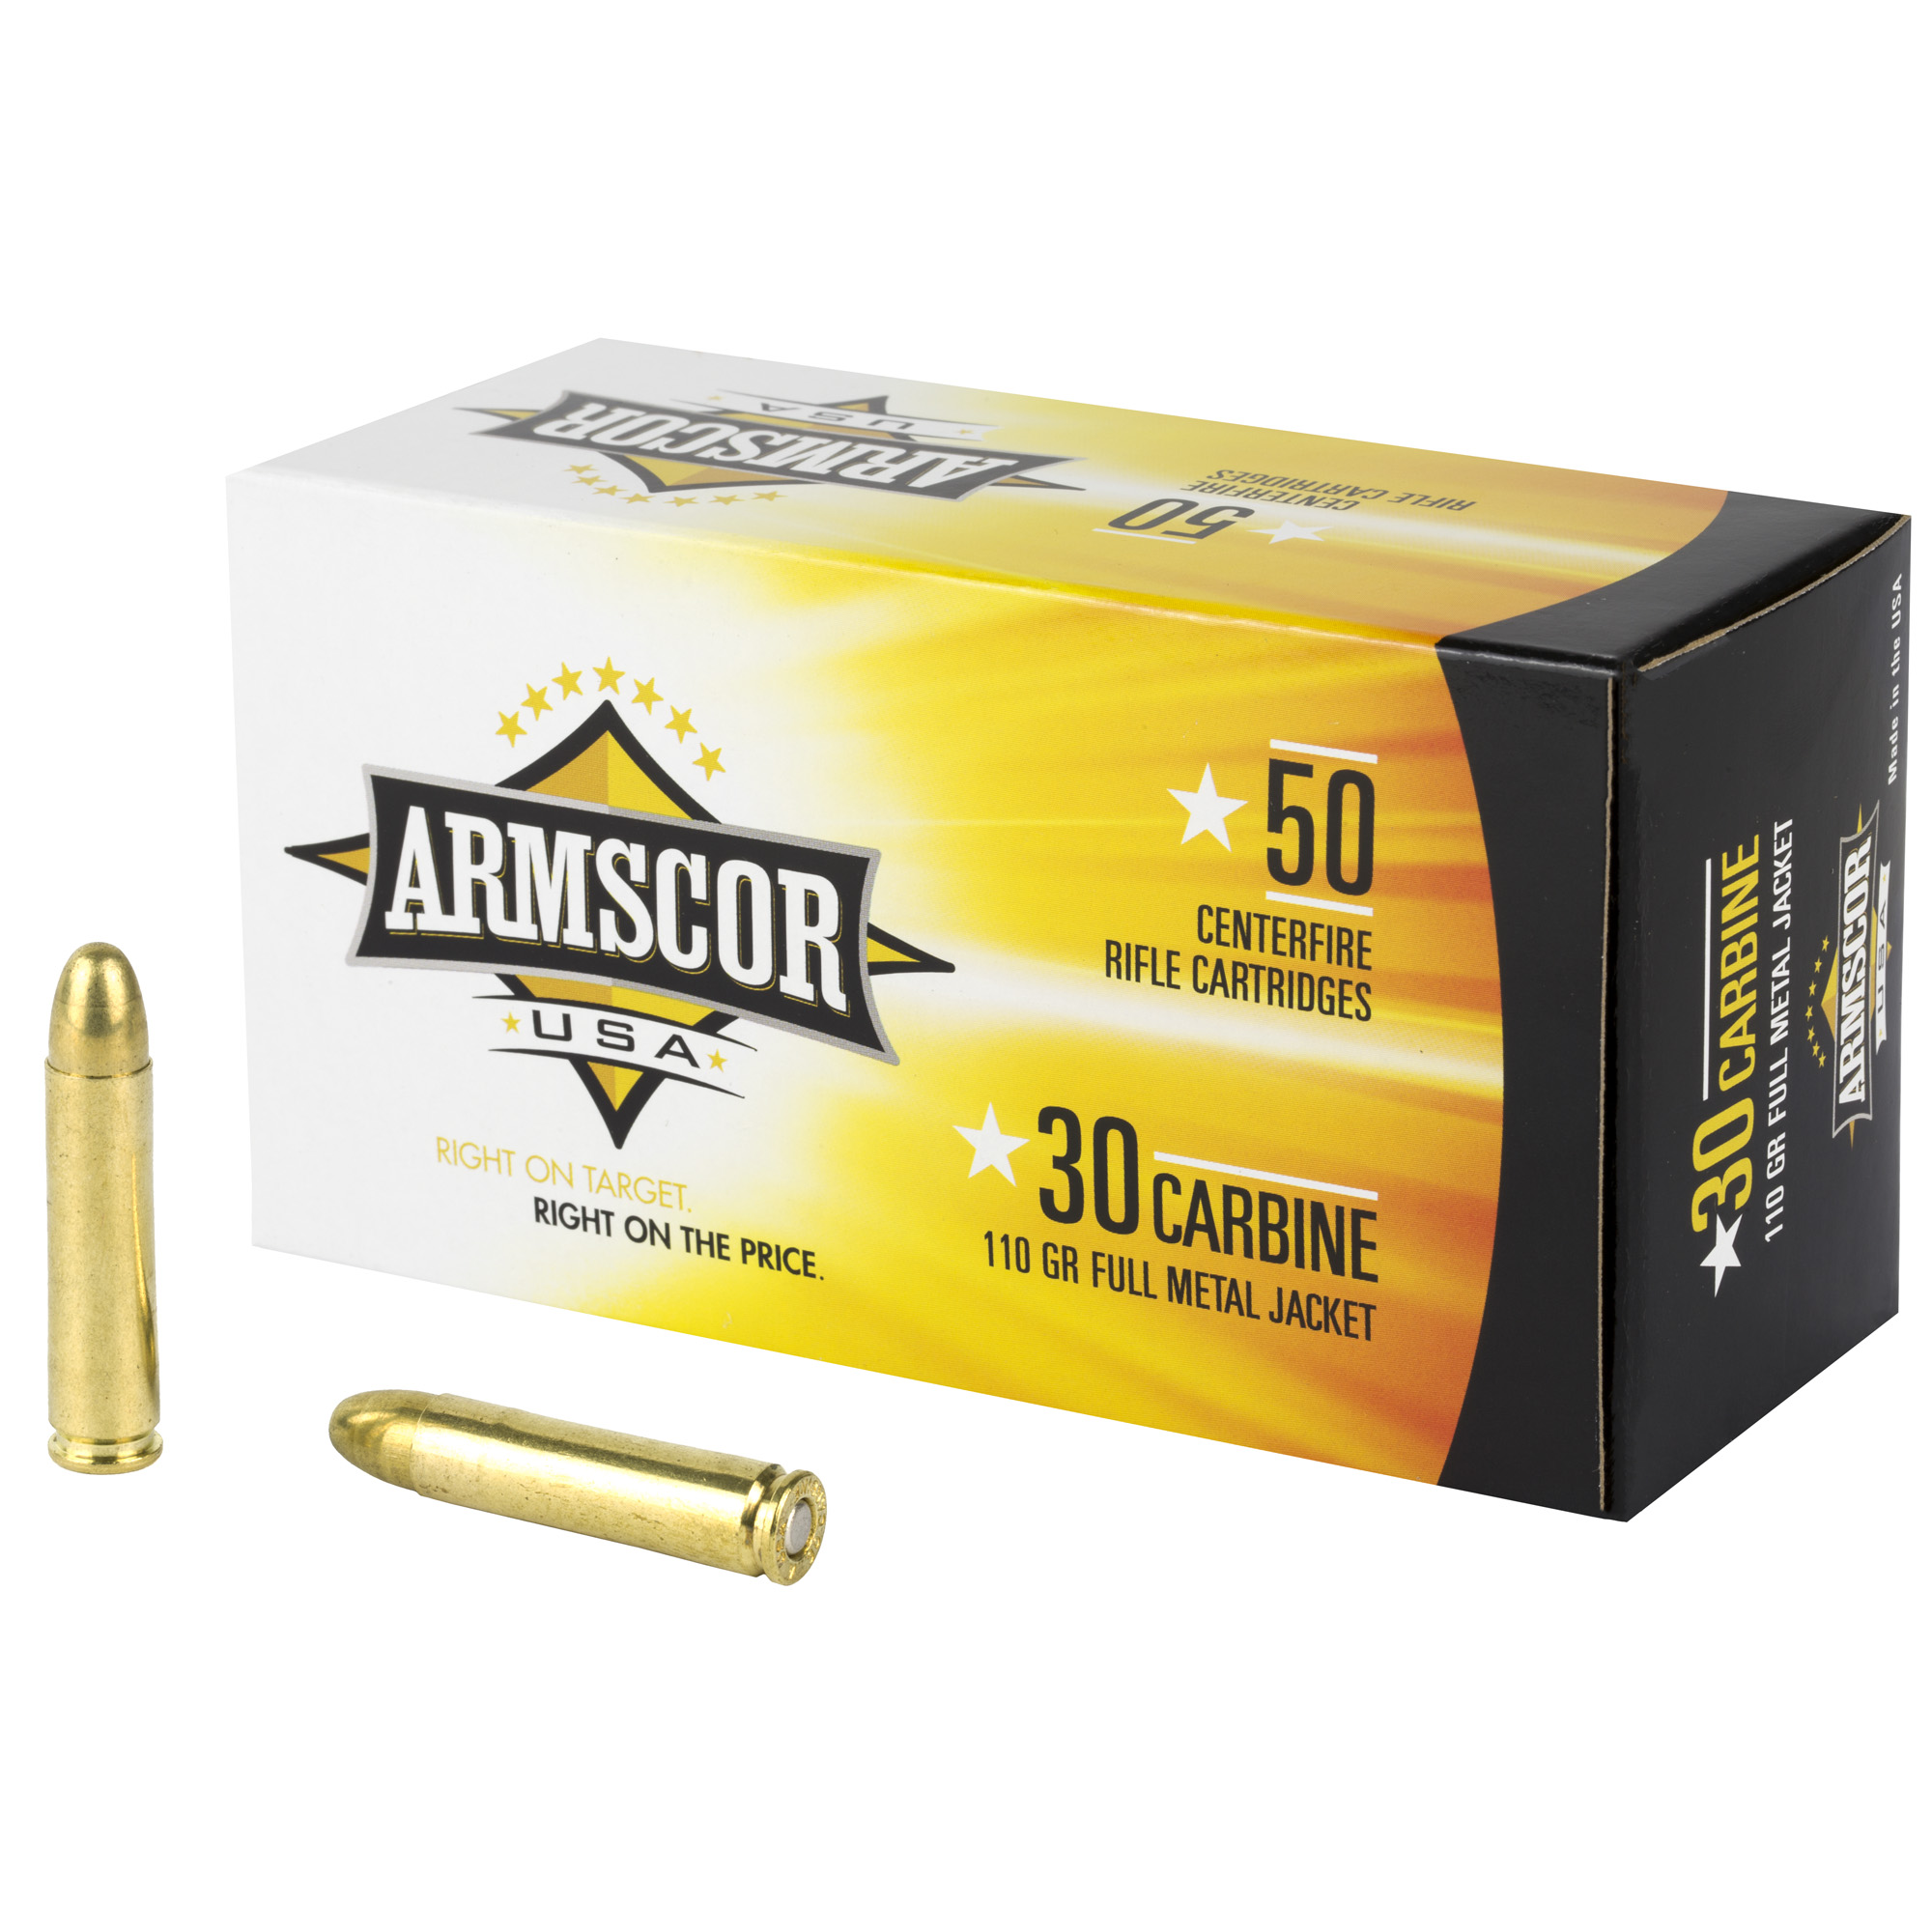 Armscor 30carb 110gr Fmj 50/1000